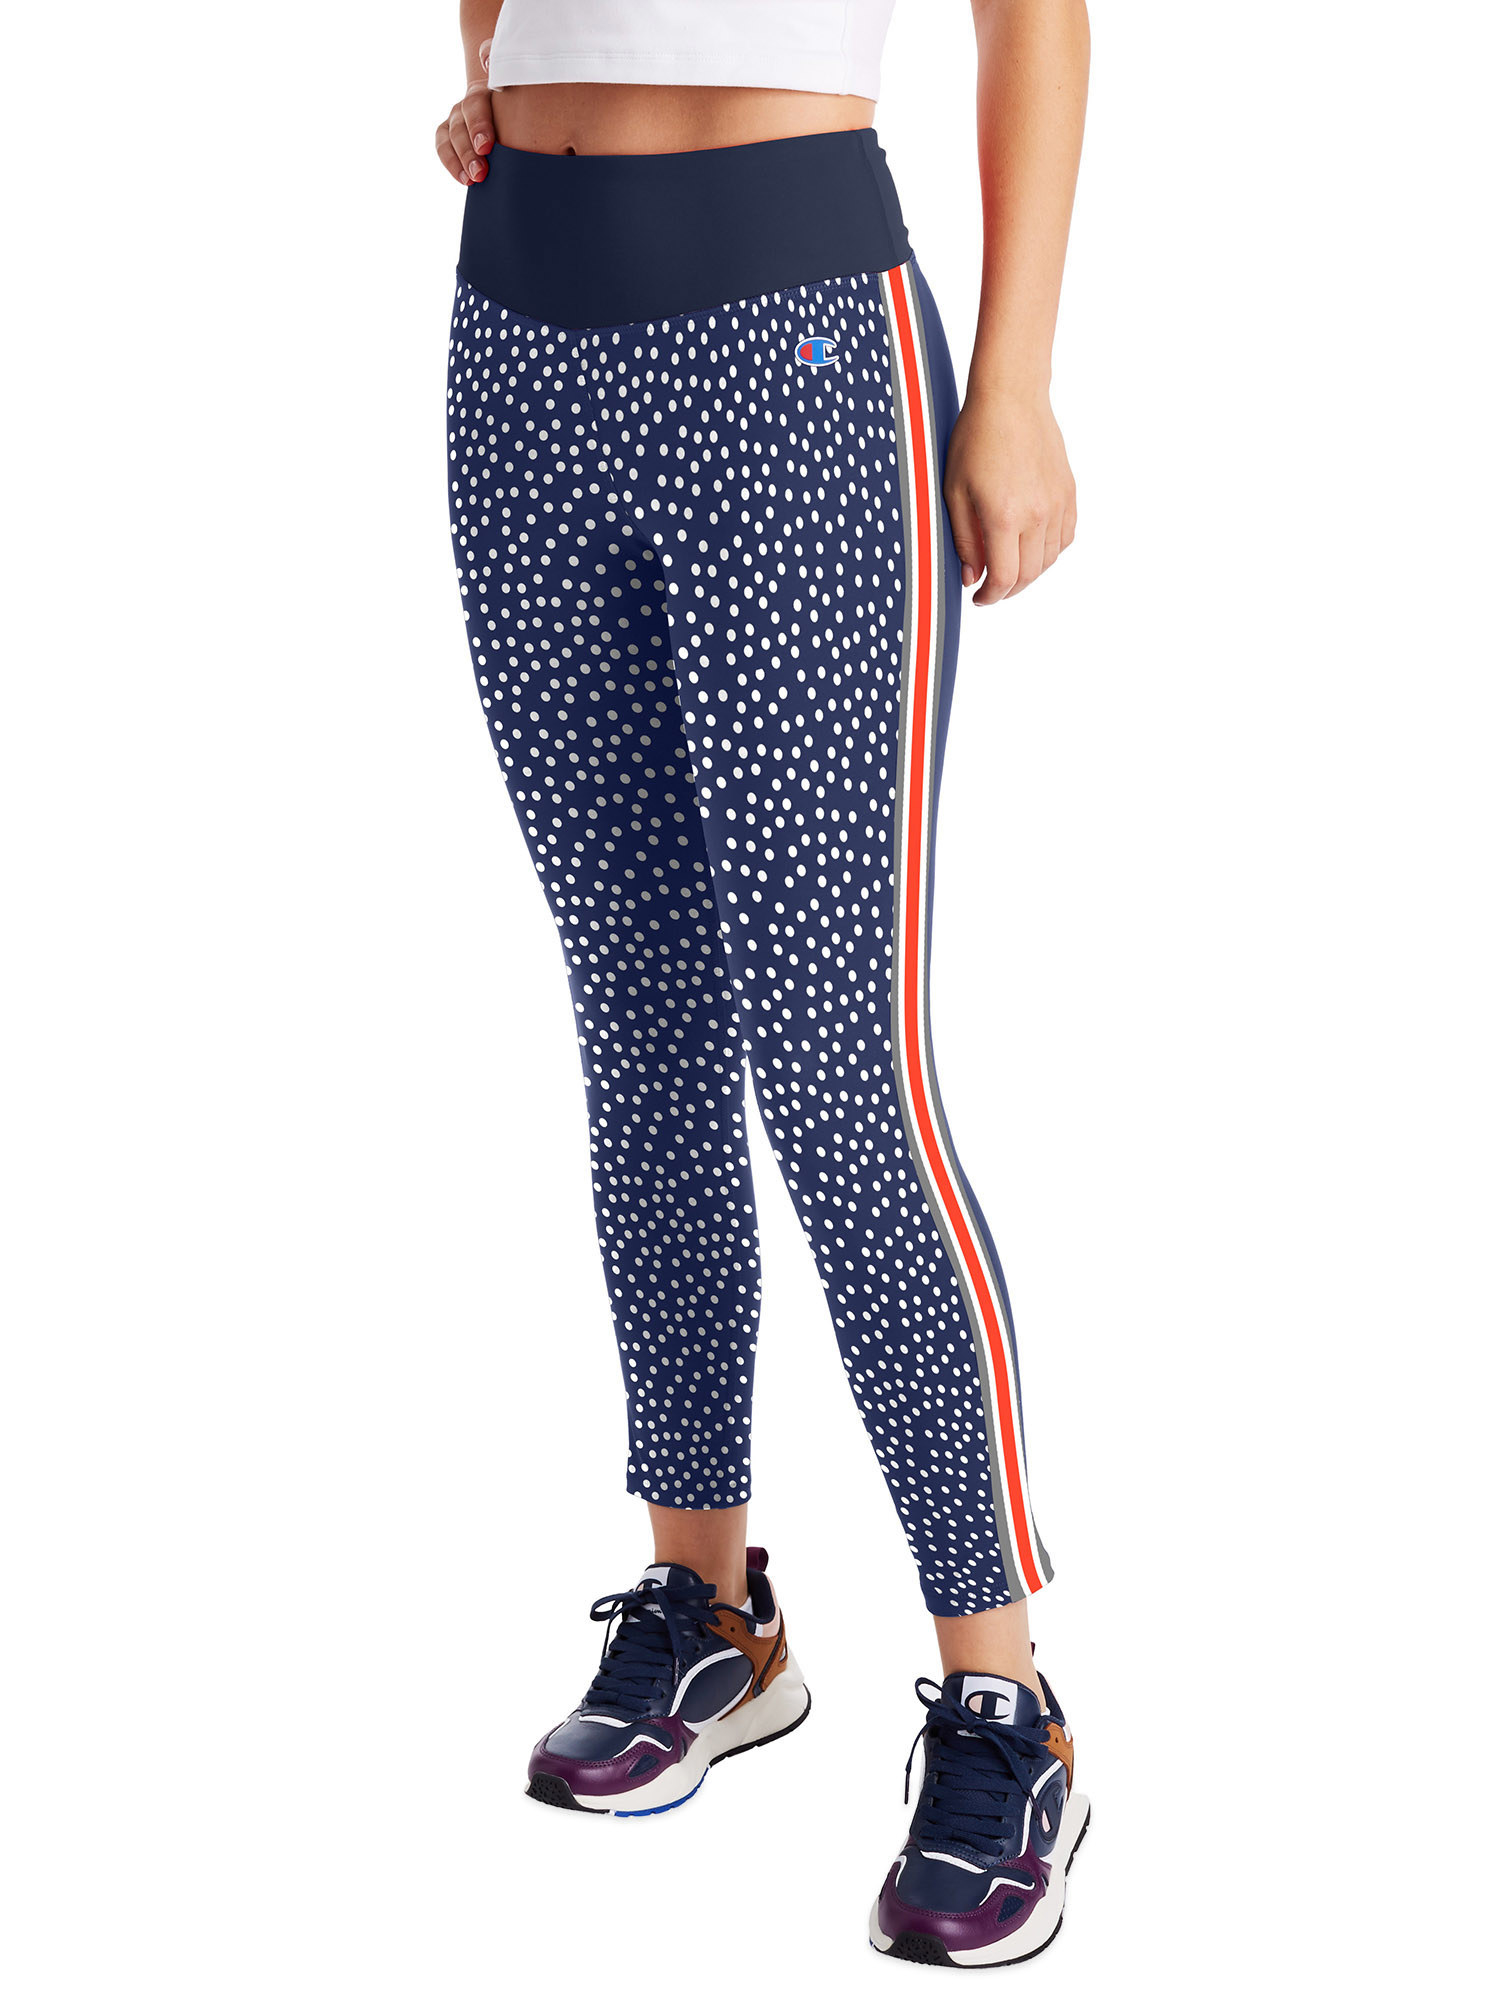 model wearing navy blue and white dotted leggings with red stripe